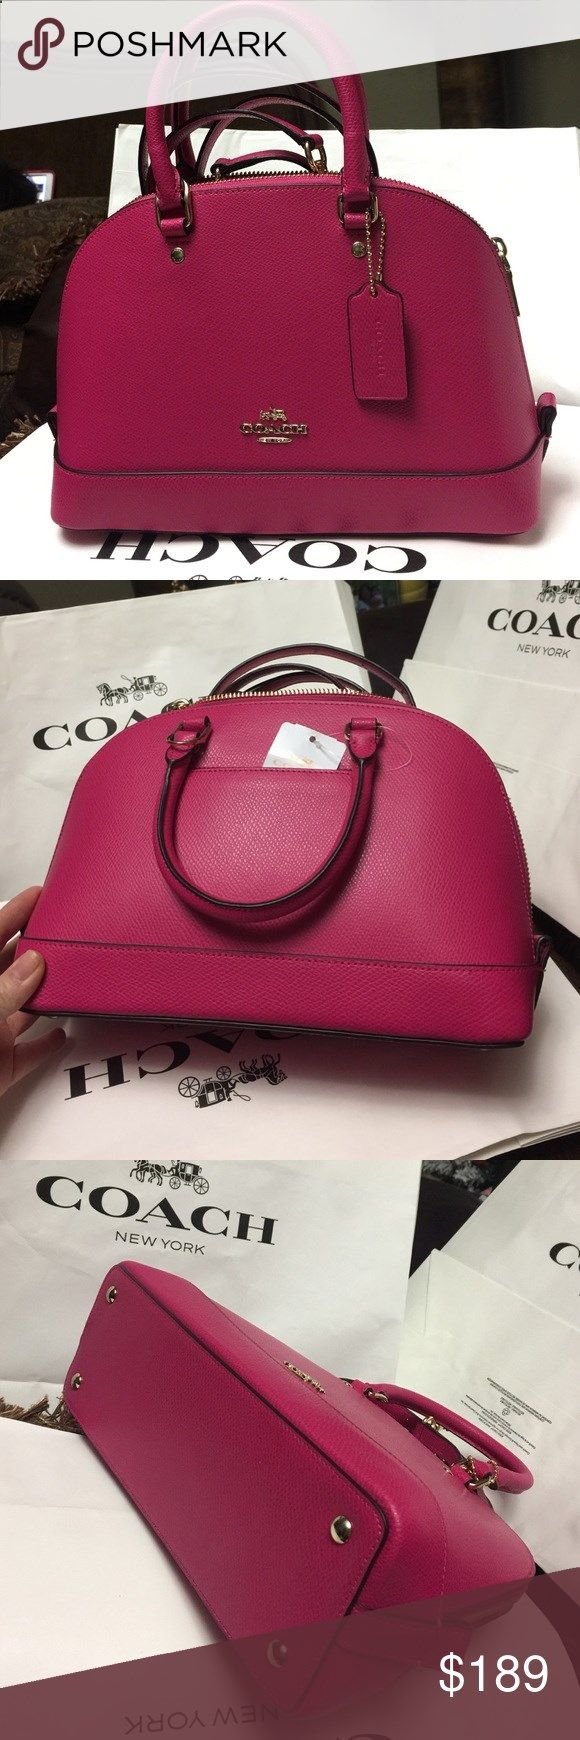 f73b5b732b7 Coach Purse 100% Authentic Coach Purse, brand new with tag!.color Pink  Ruby. Coach Bags Crossbody Bags